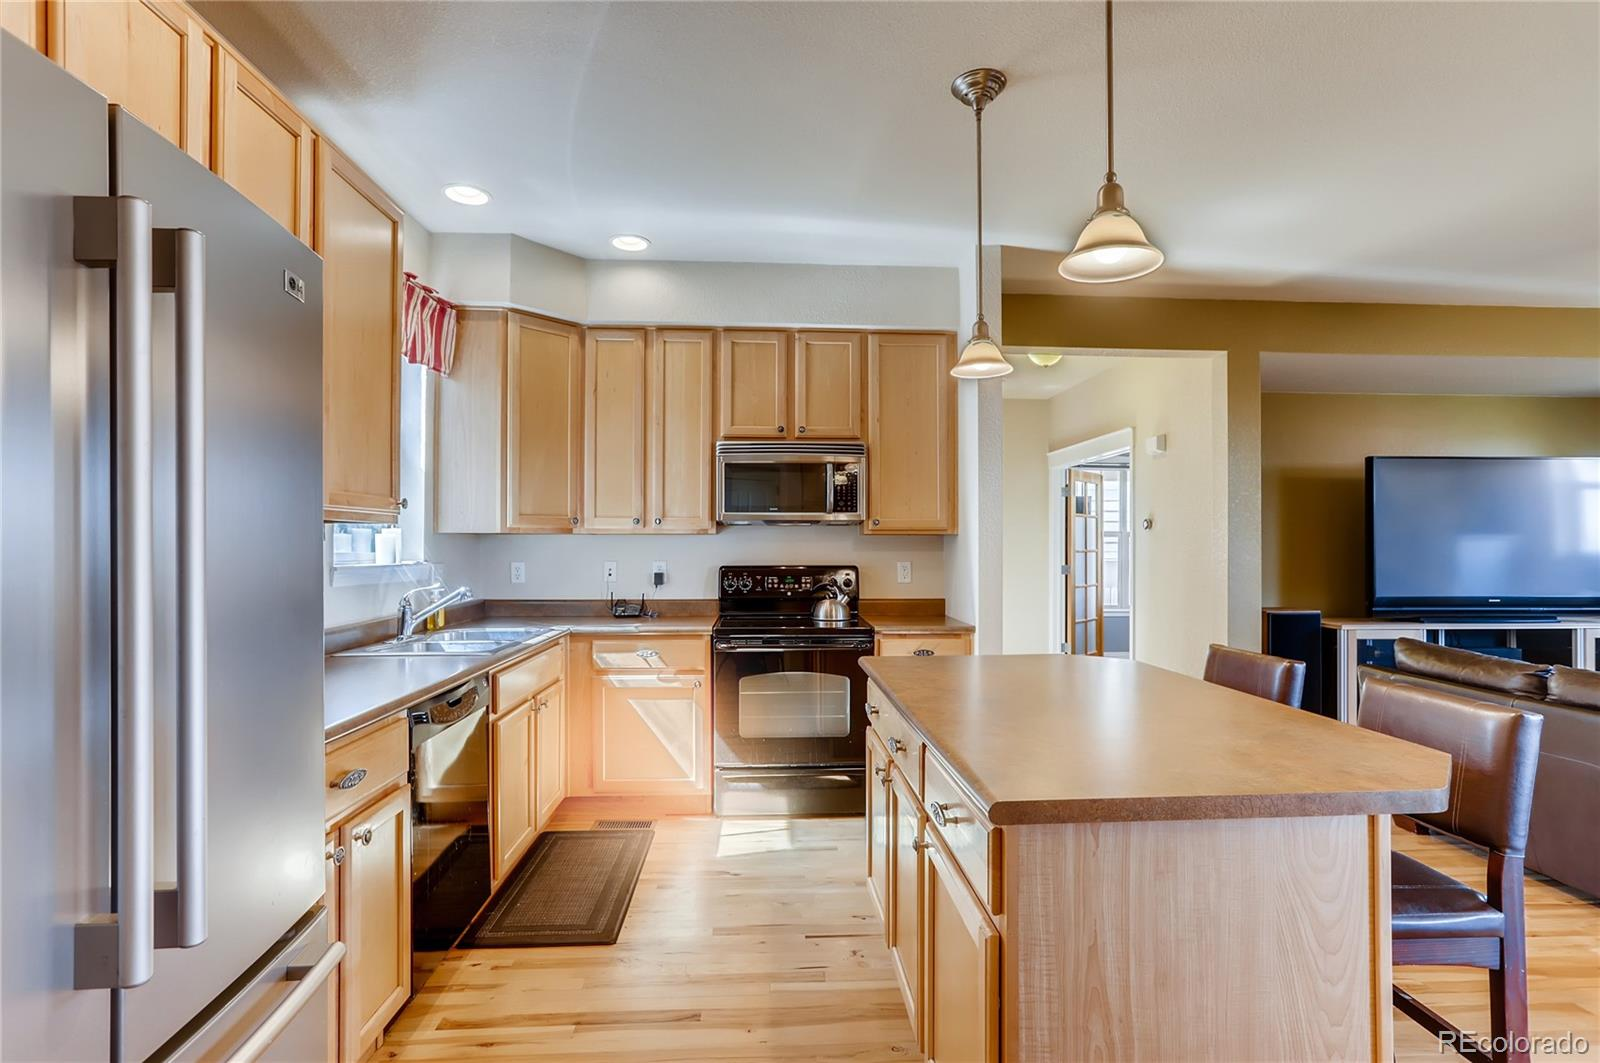 MLS# 3732250 - 15 - 650 Homestead Street, Lafayette, CO 80026